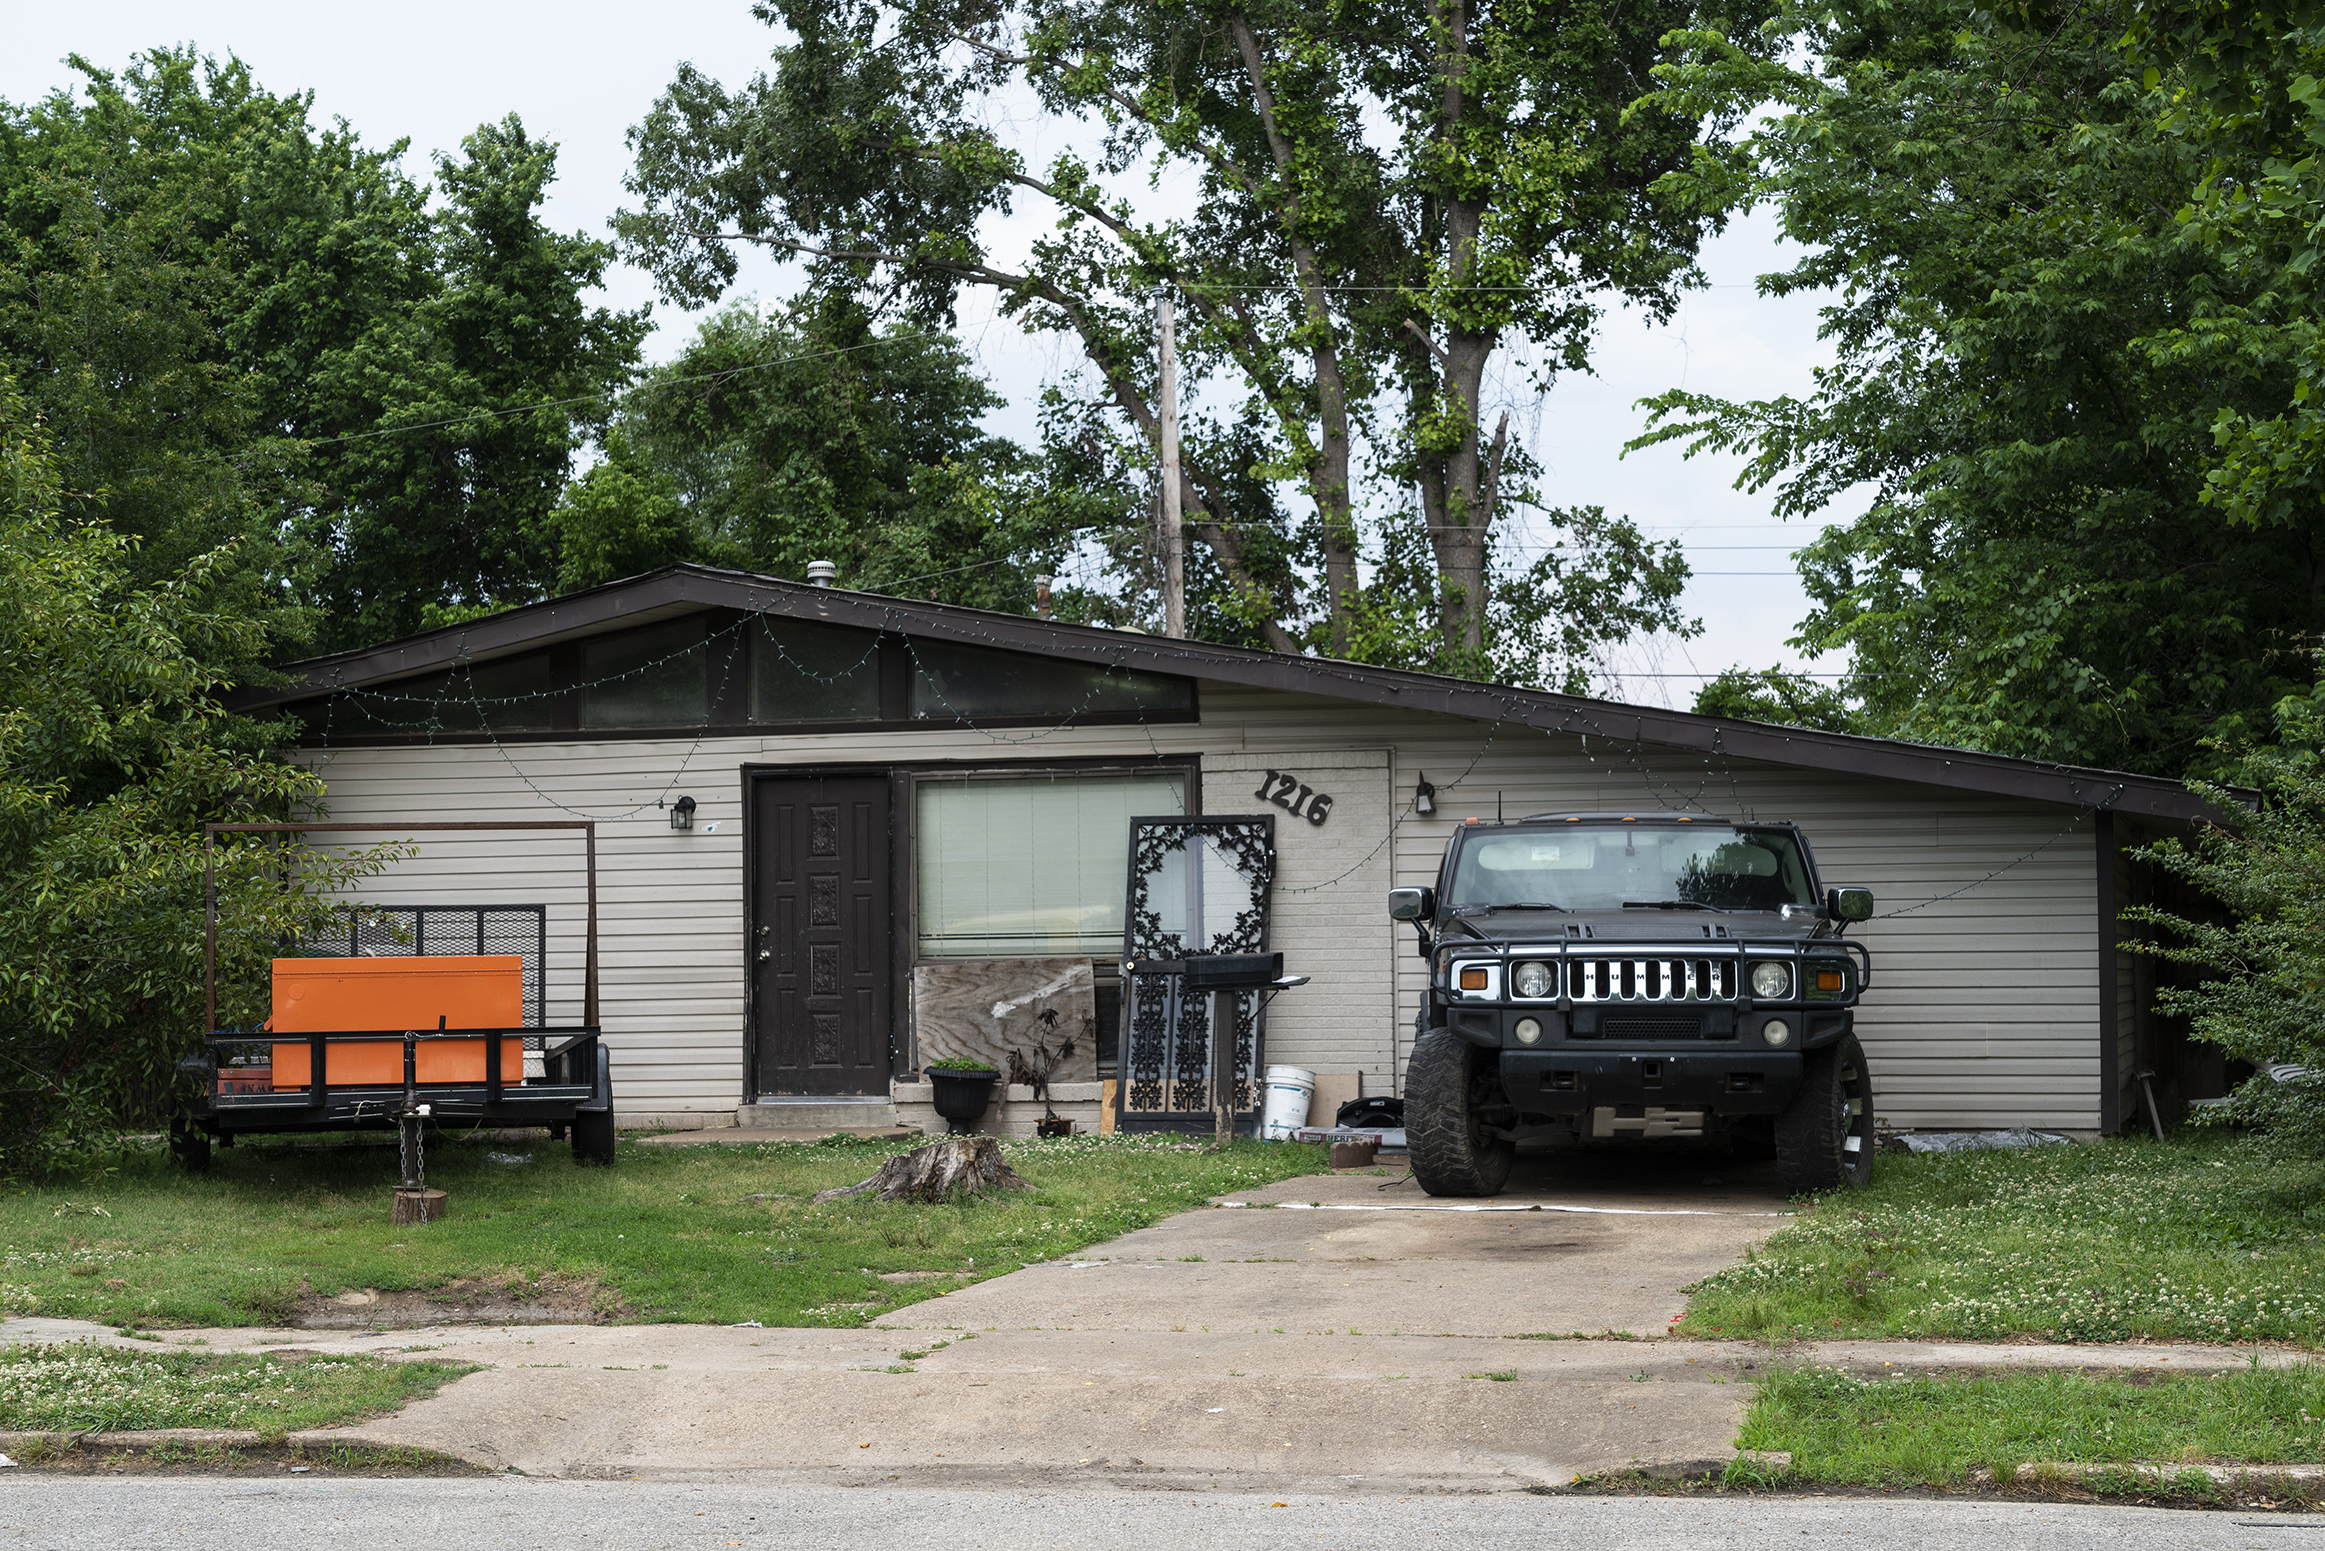 Jeep and Trailer, Memphis 2018